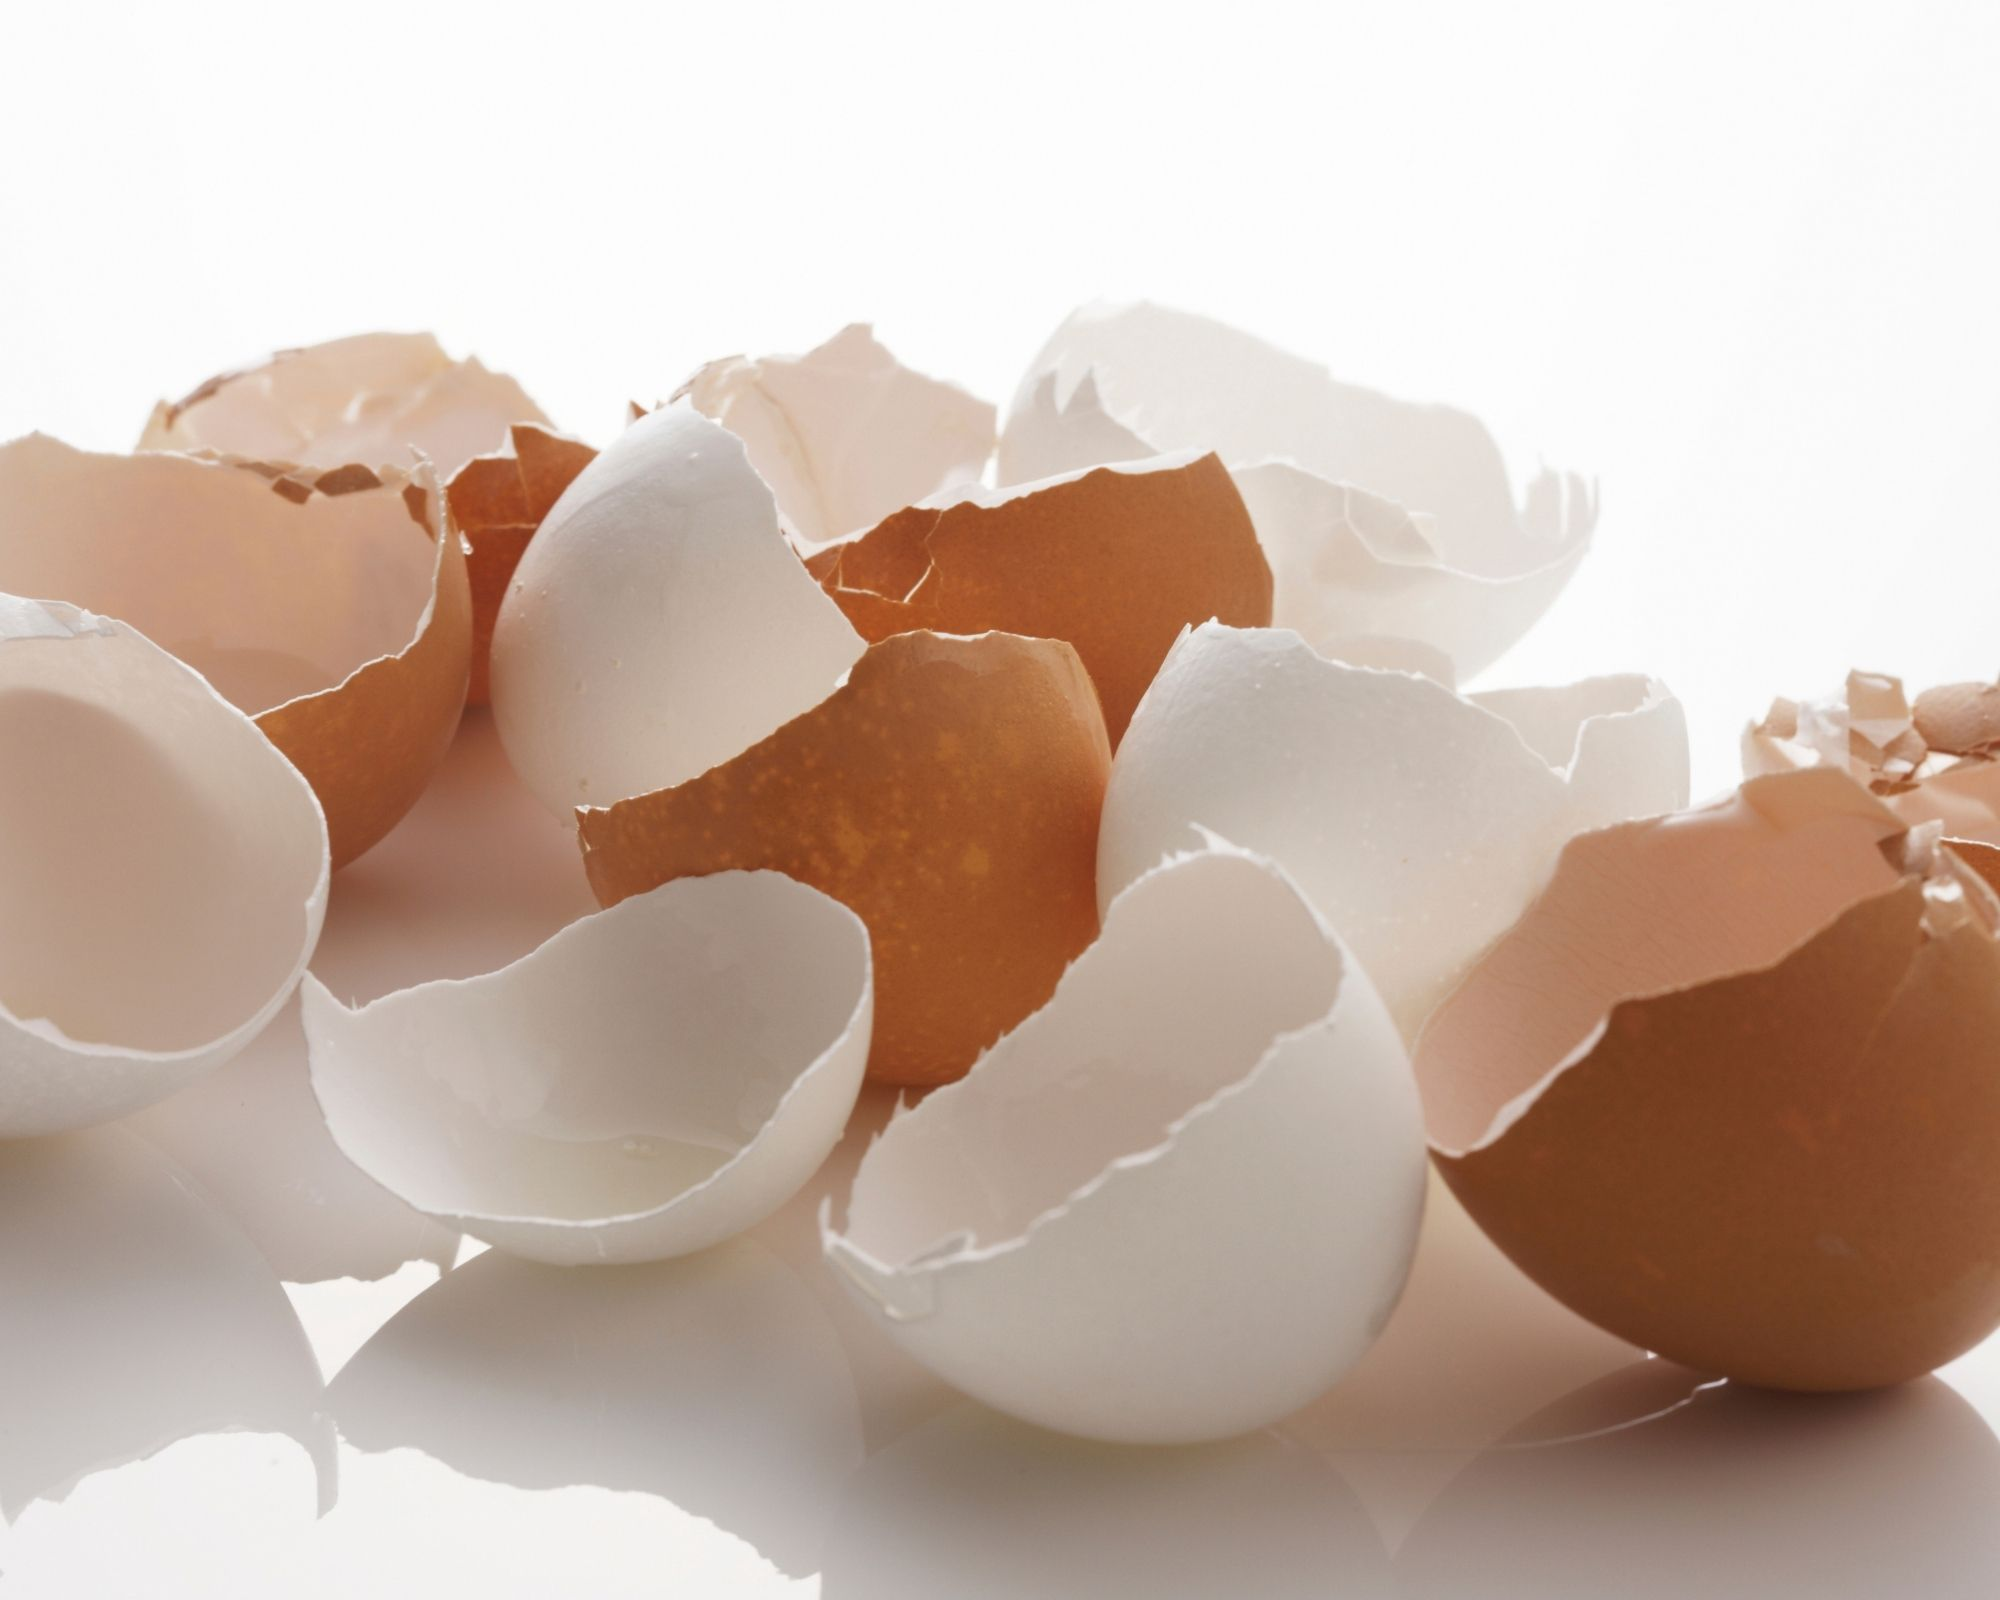 Egg Shells - Indicating How Egg Shell Membrane Can Help a Joint